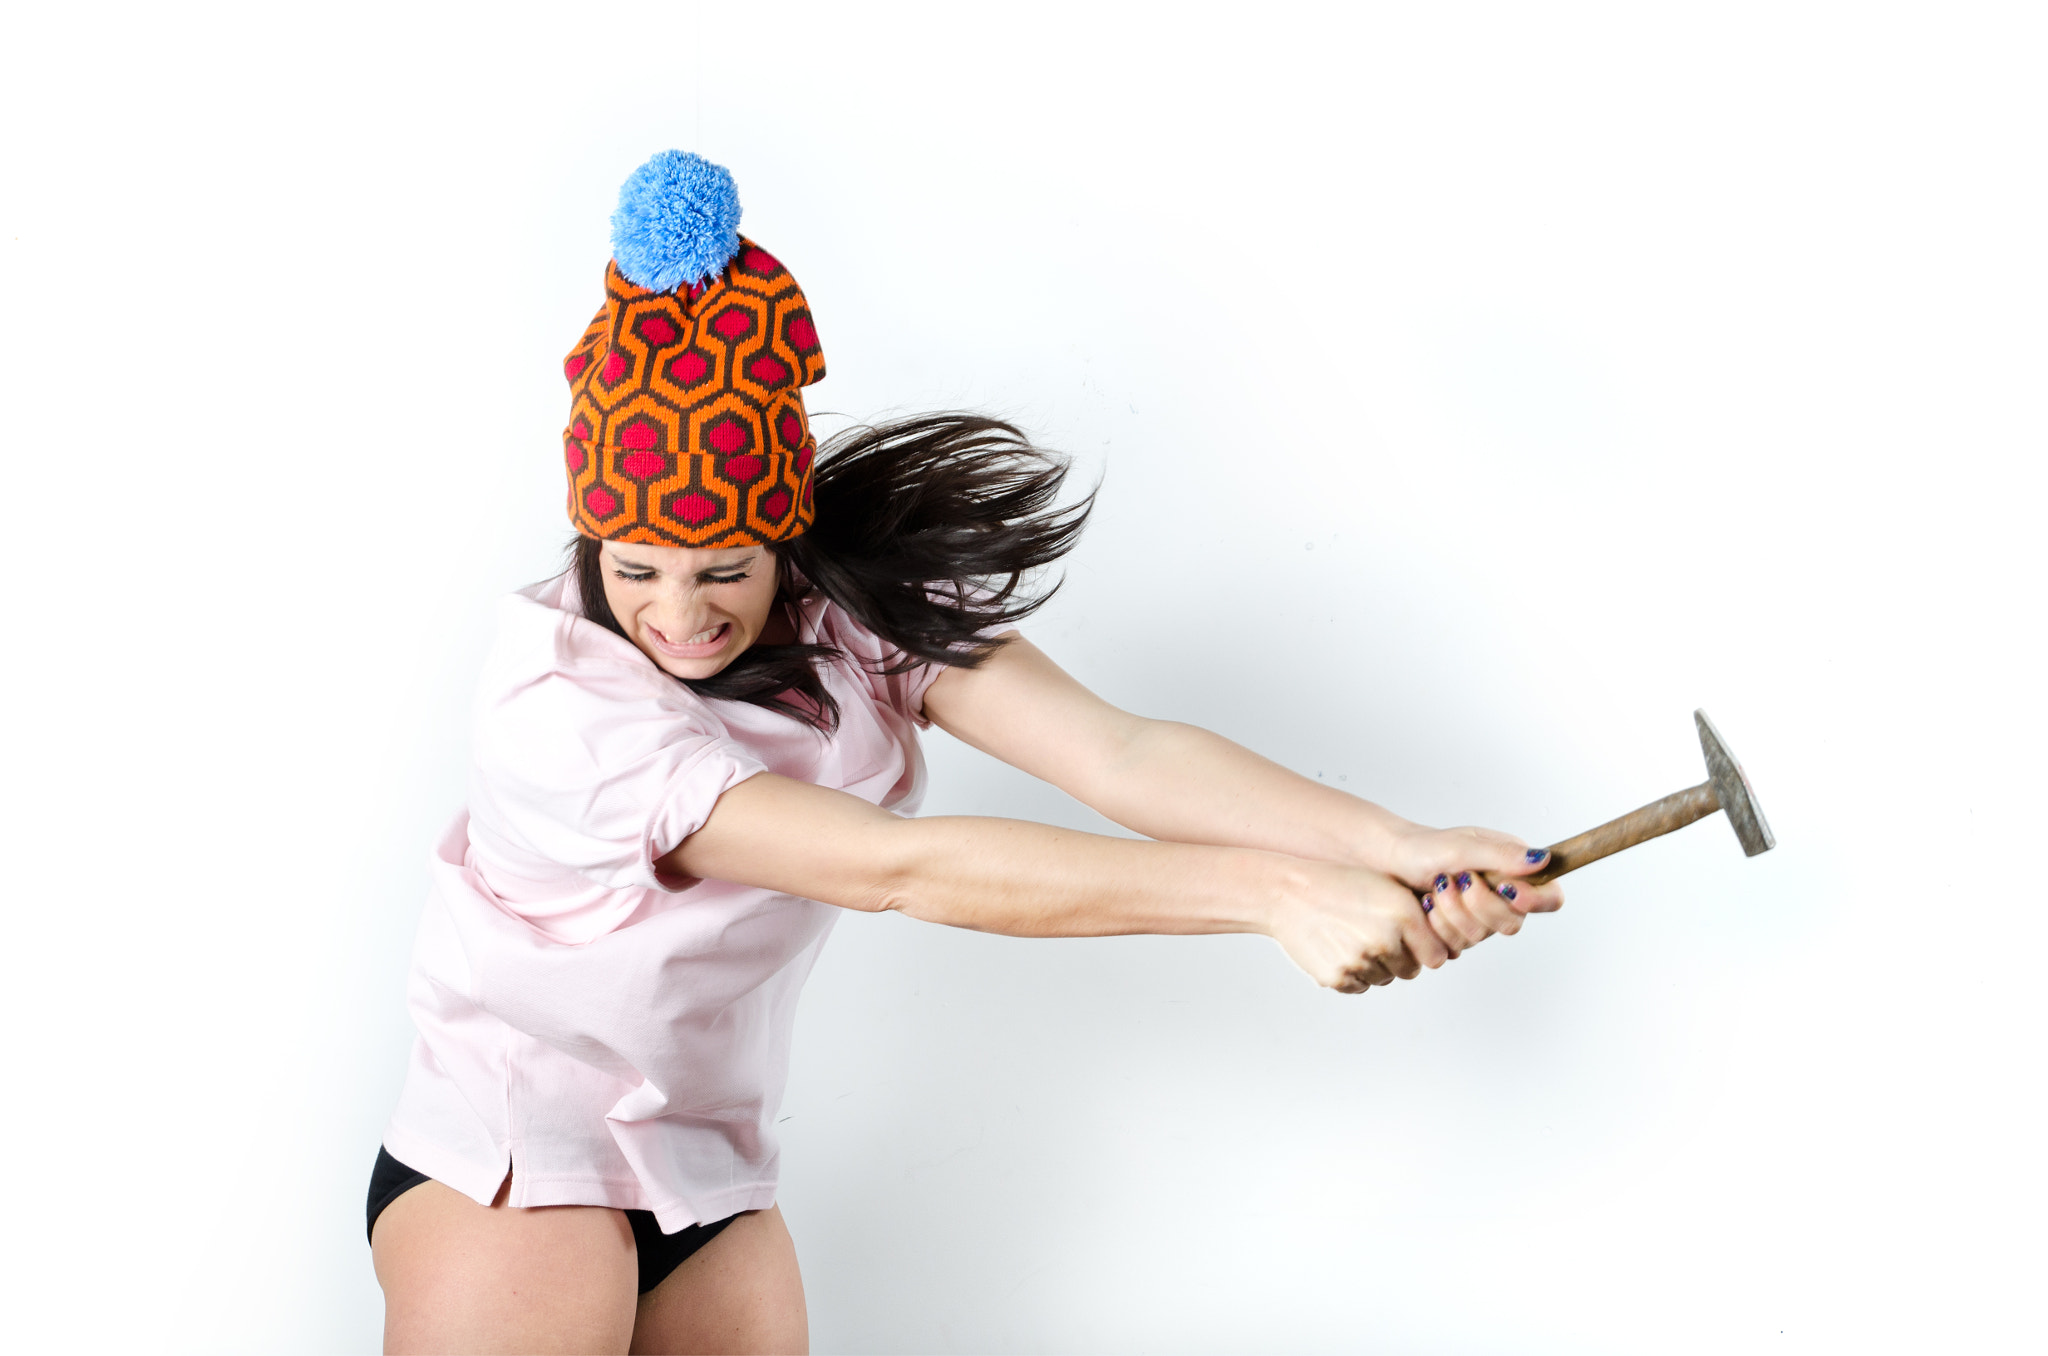 Photograph Shinign beanie product shoot by Danny Allison on 500px